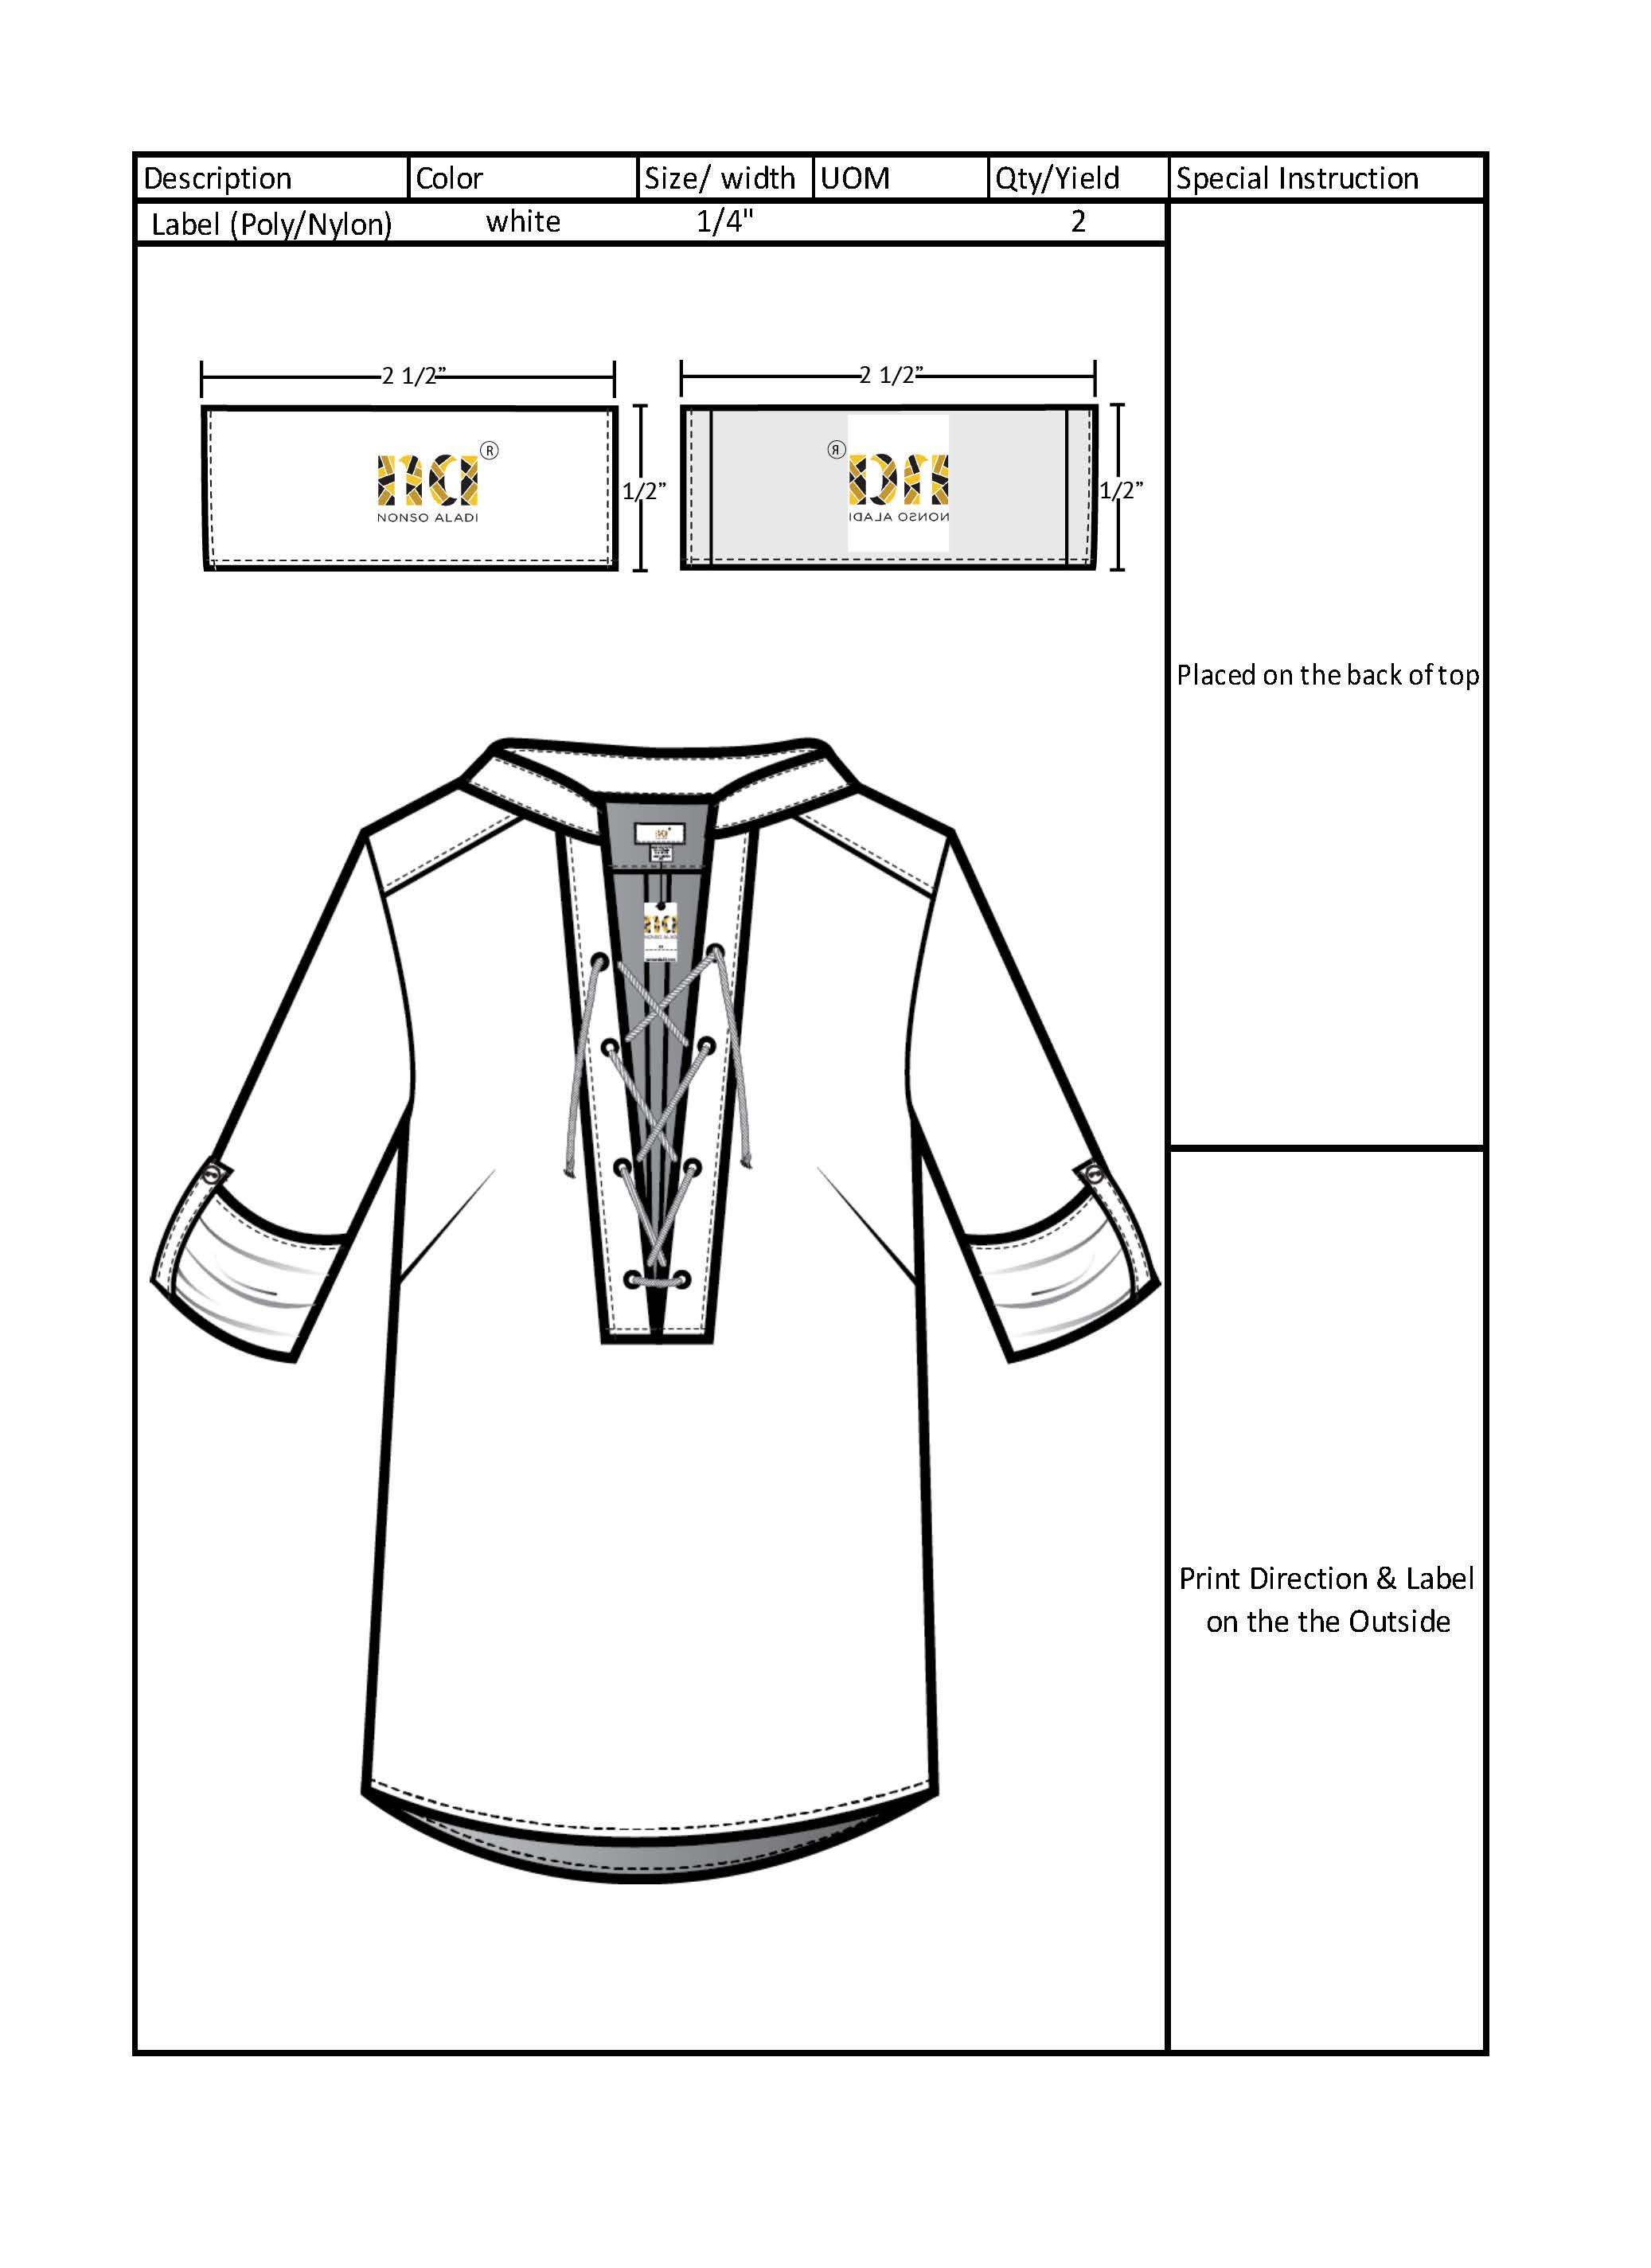 Blouse page_Page_12.jpg